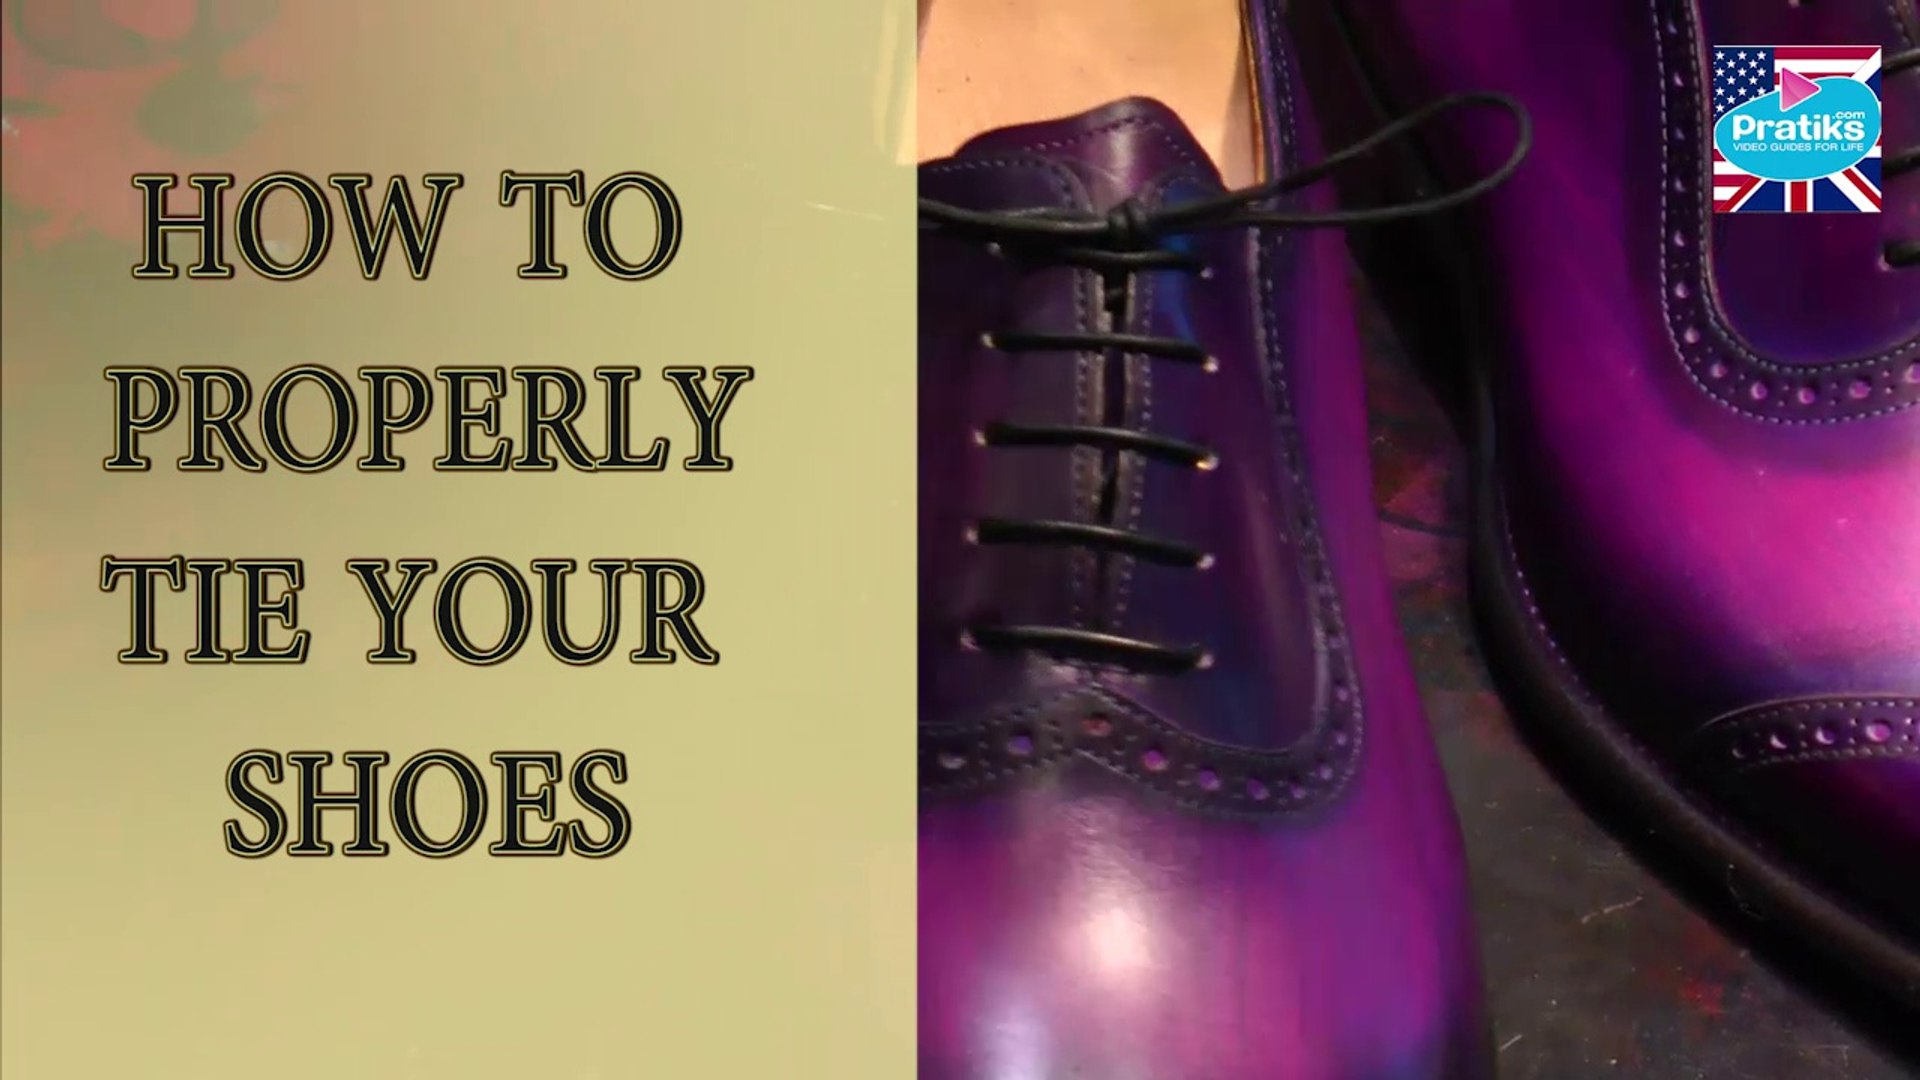 How to properly tie your shoes